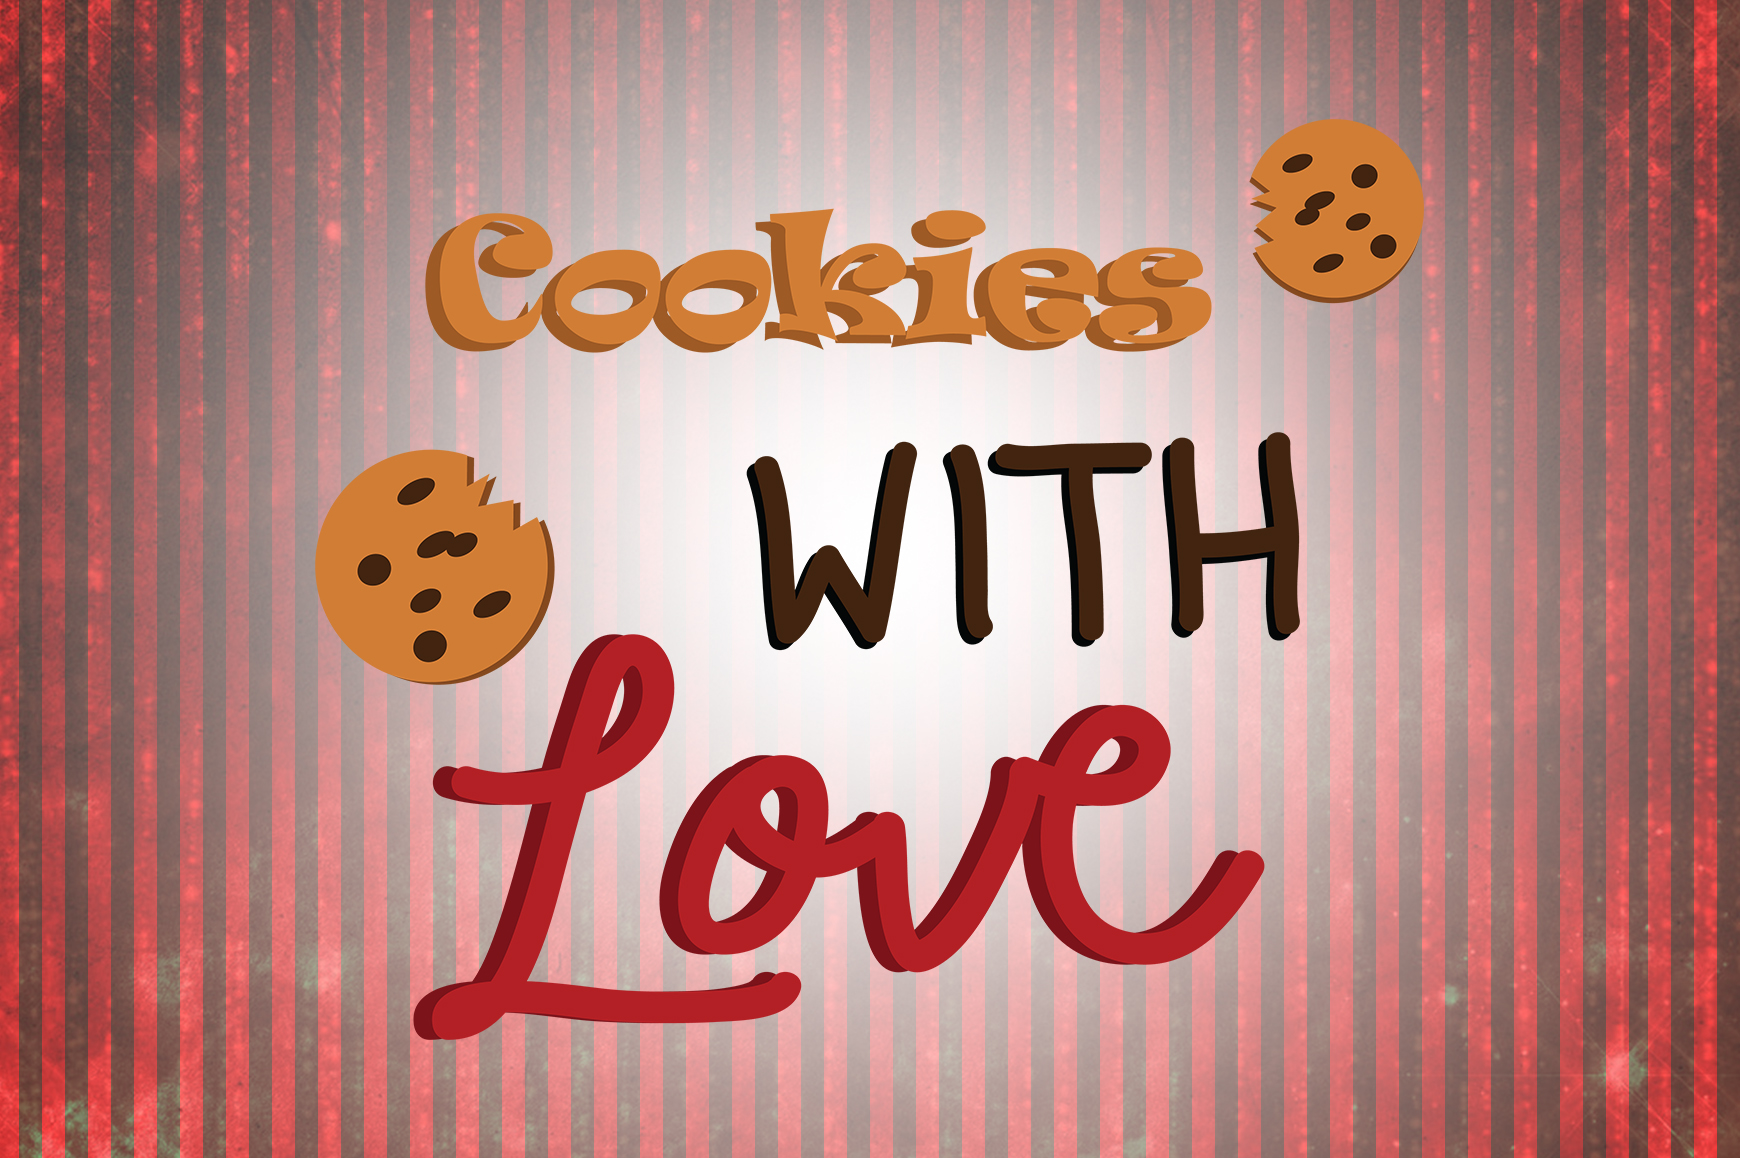 Download Free Cookies With Love Christmas Quotes Graphic By Wienscollection for Cricut Explore, Silhouette and other cutting machines.